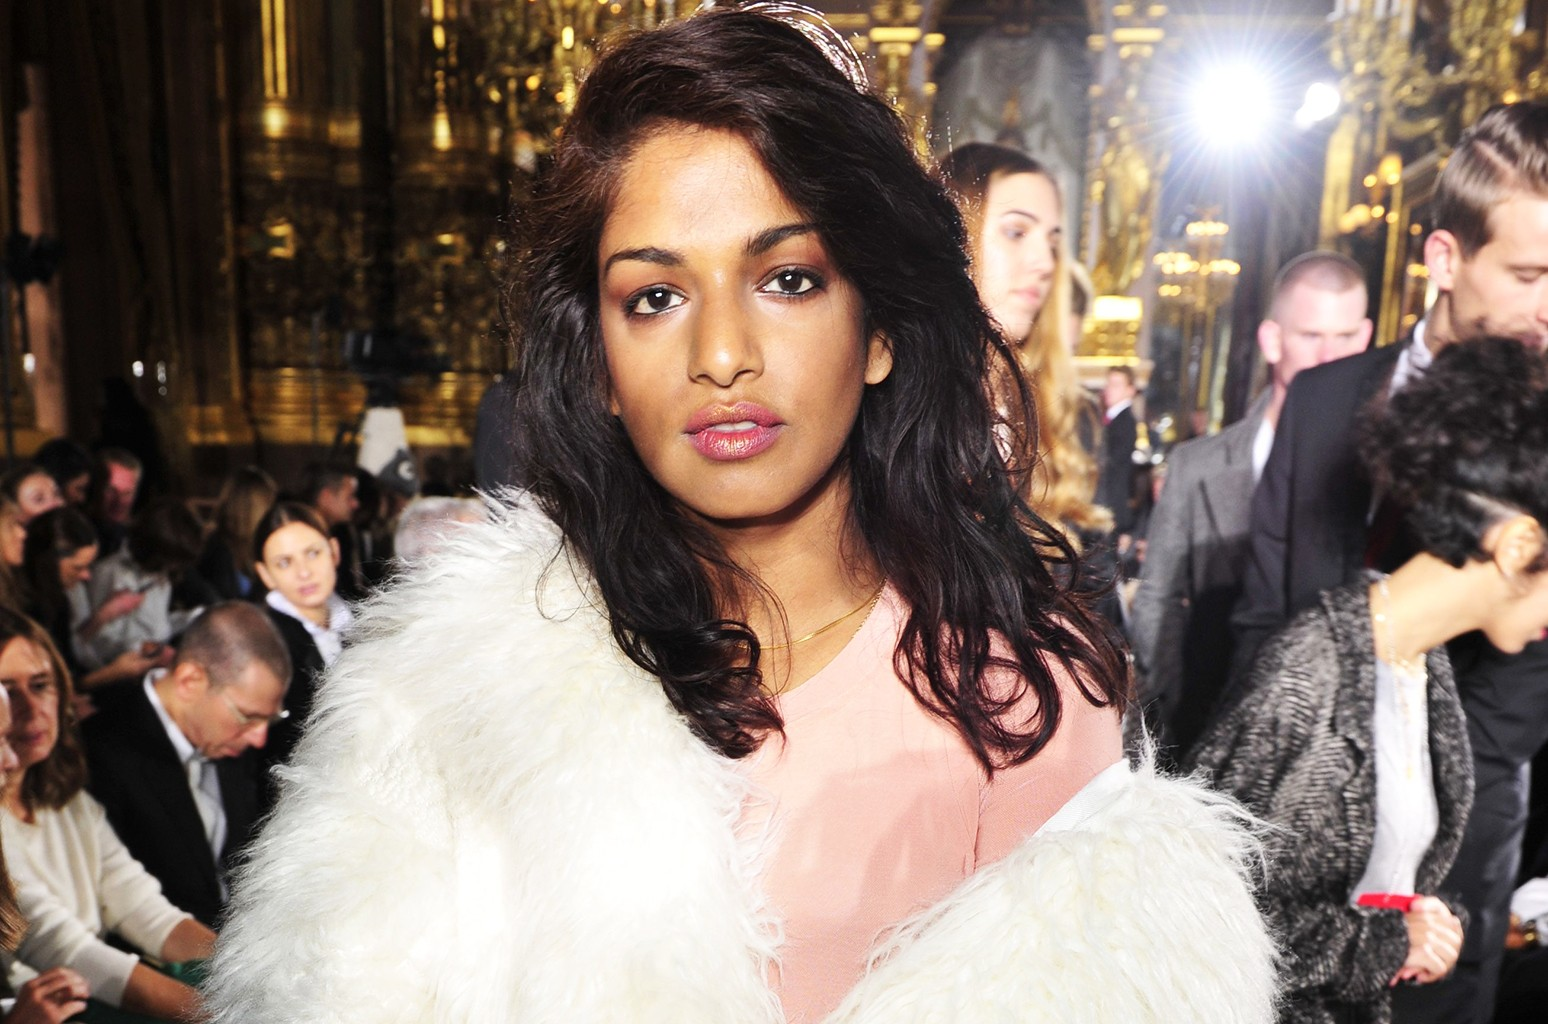 M.I.A photographed in Paris